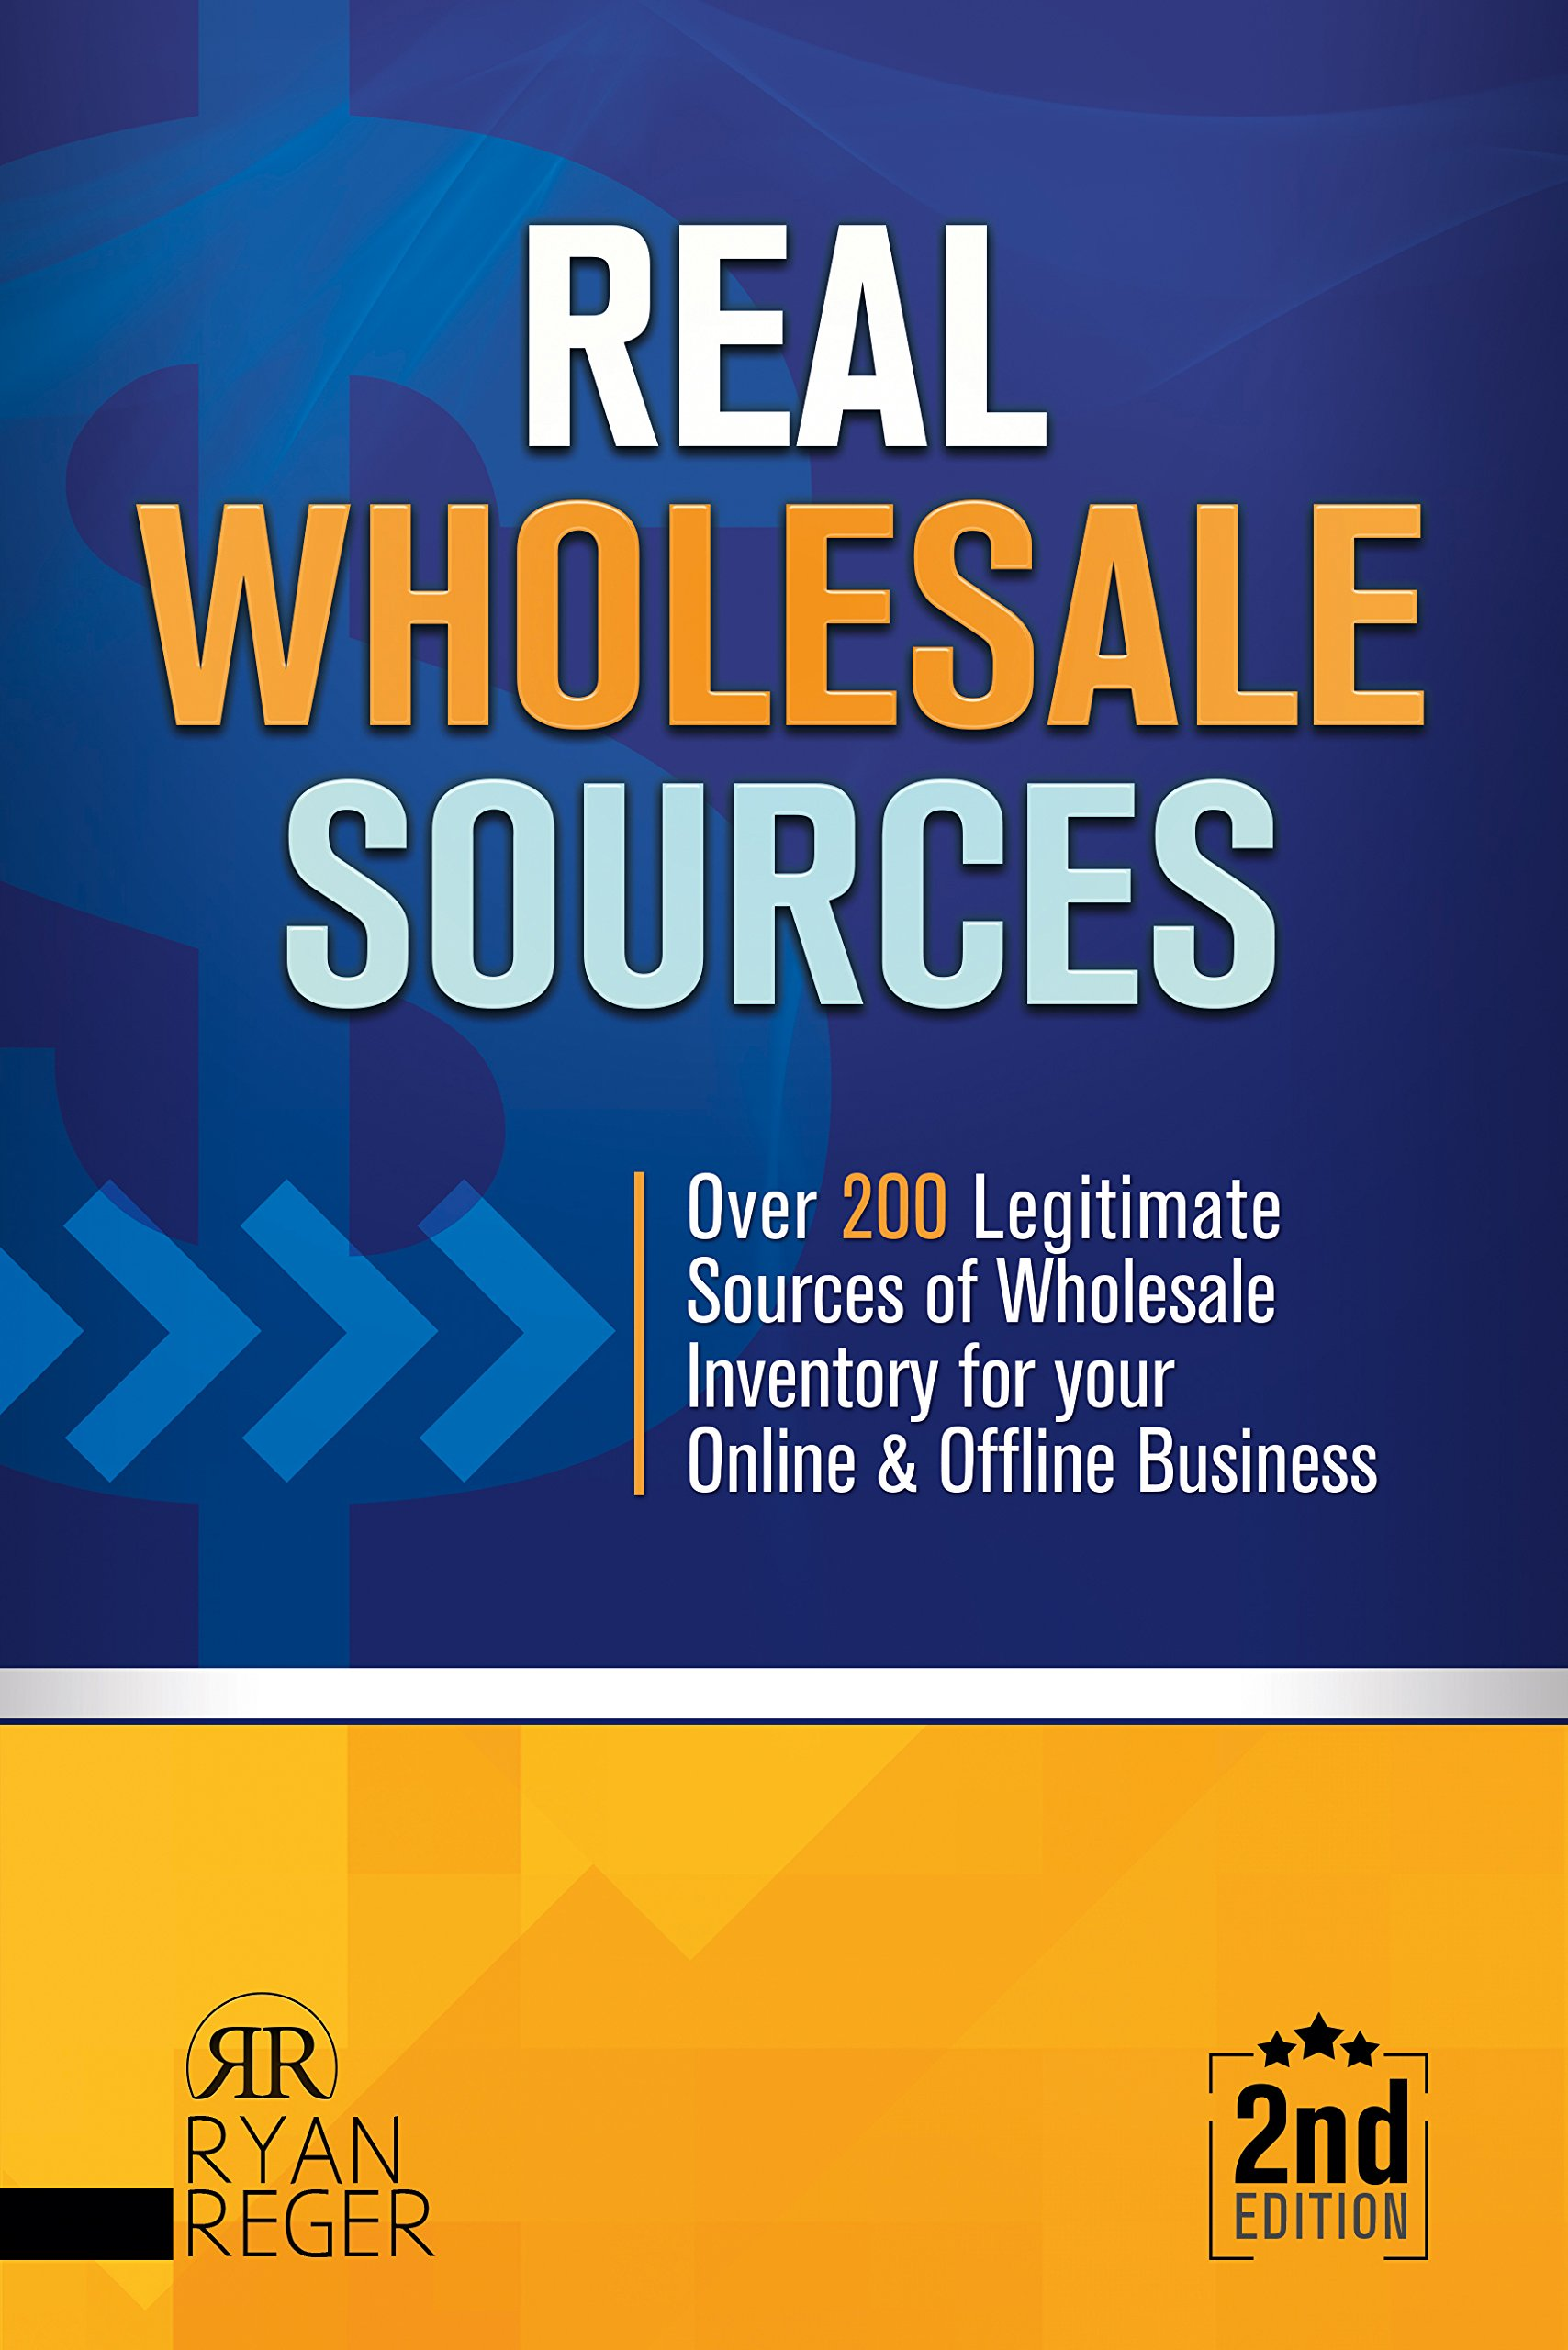 Real Wholesale Sources: Over 200 Legitimate Sources of Online Inventory for your Online and Offline Business